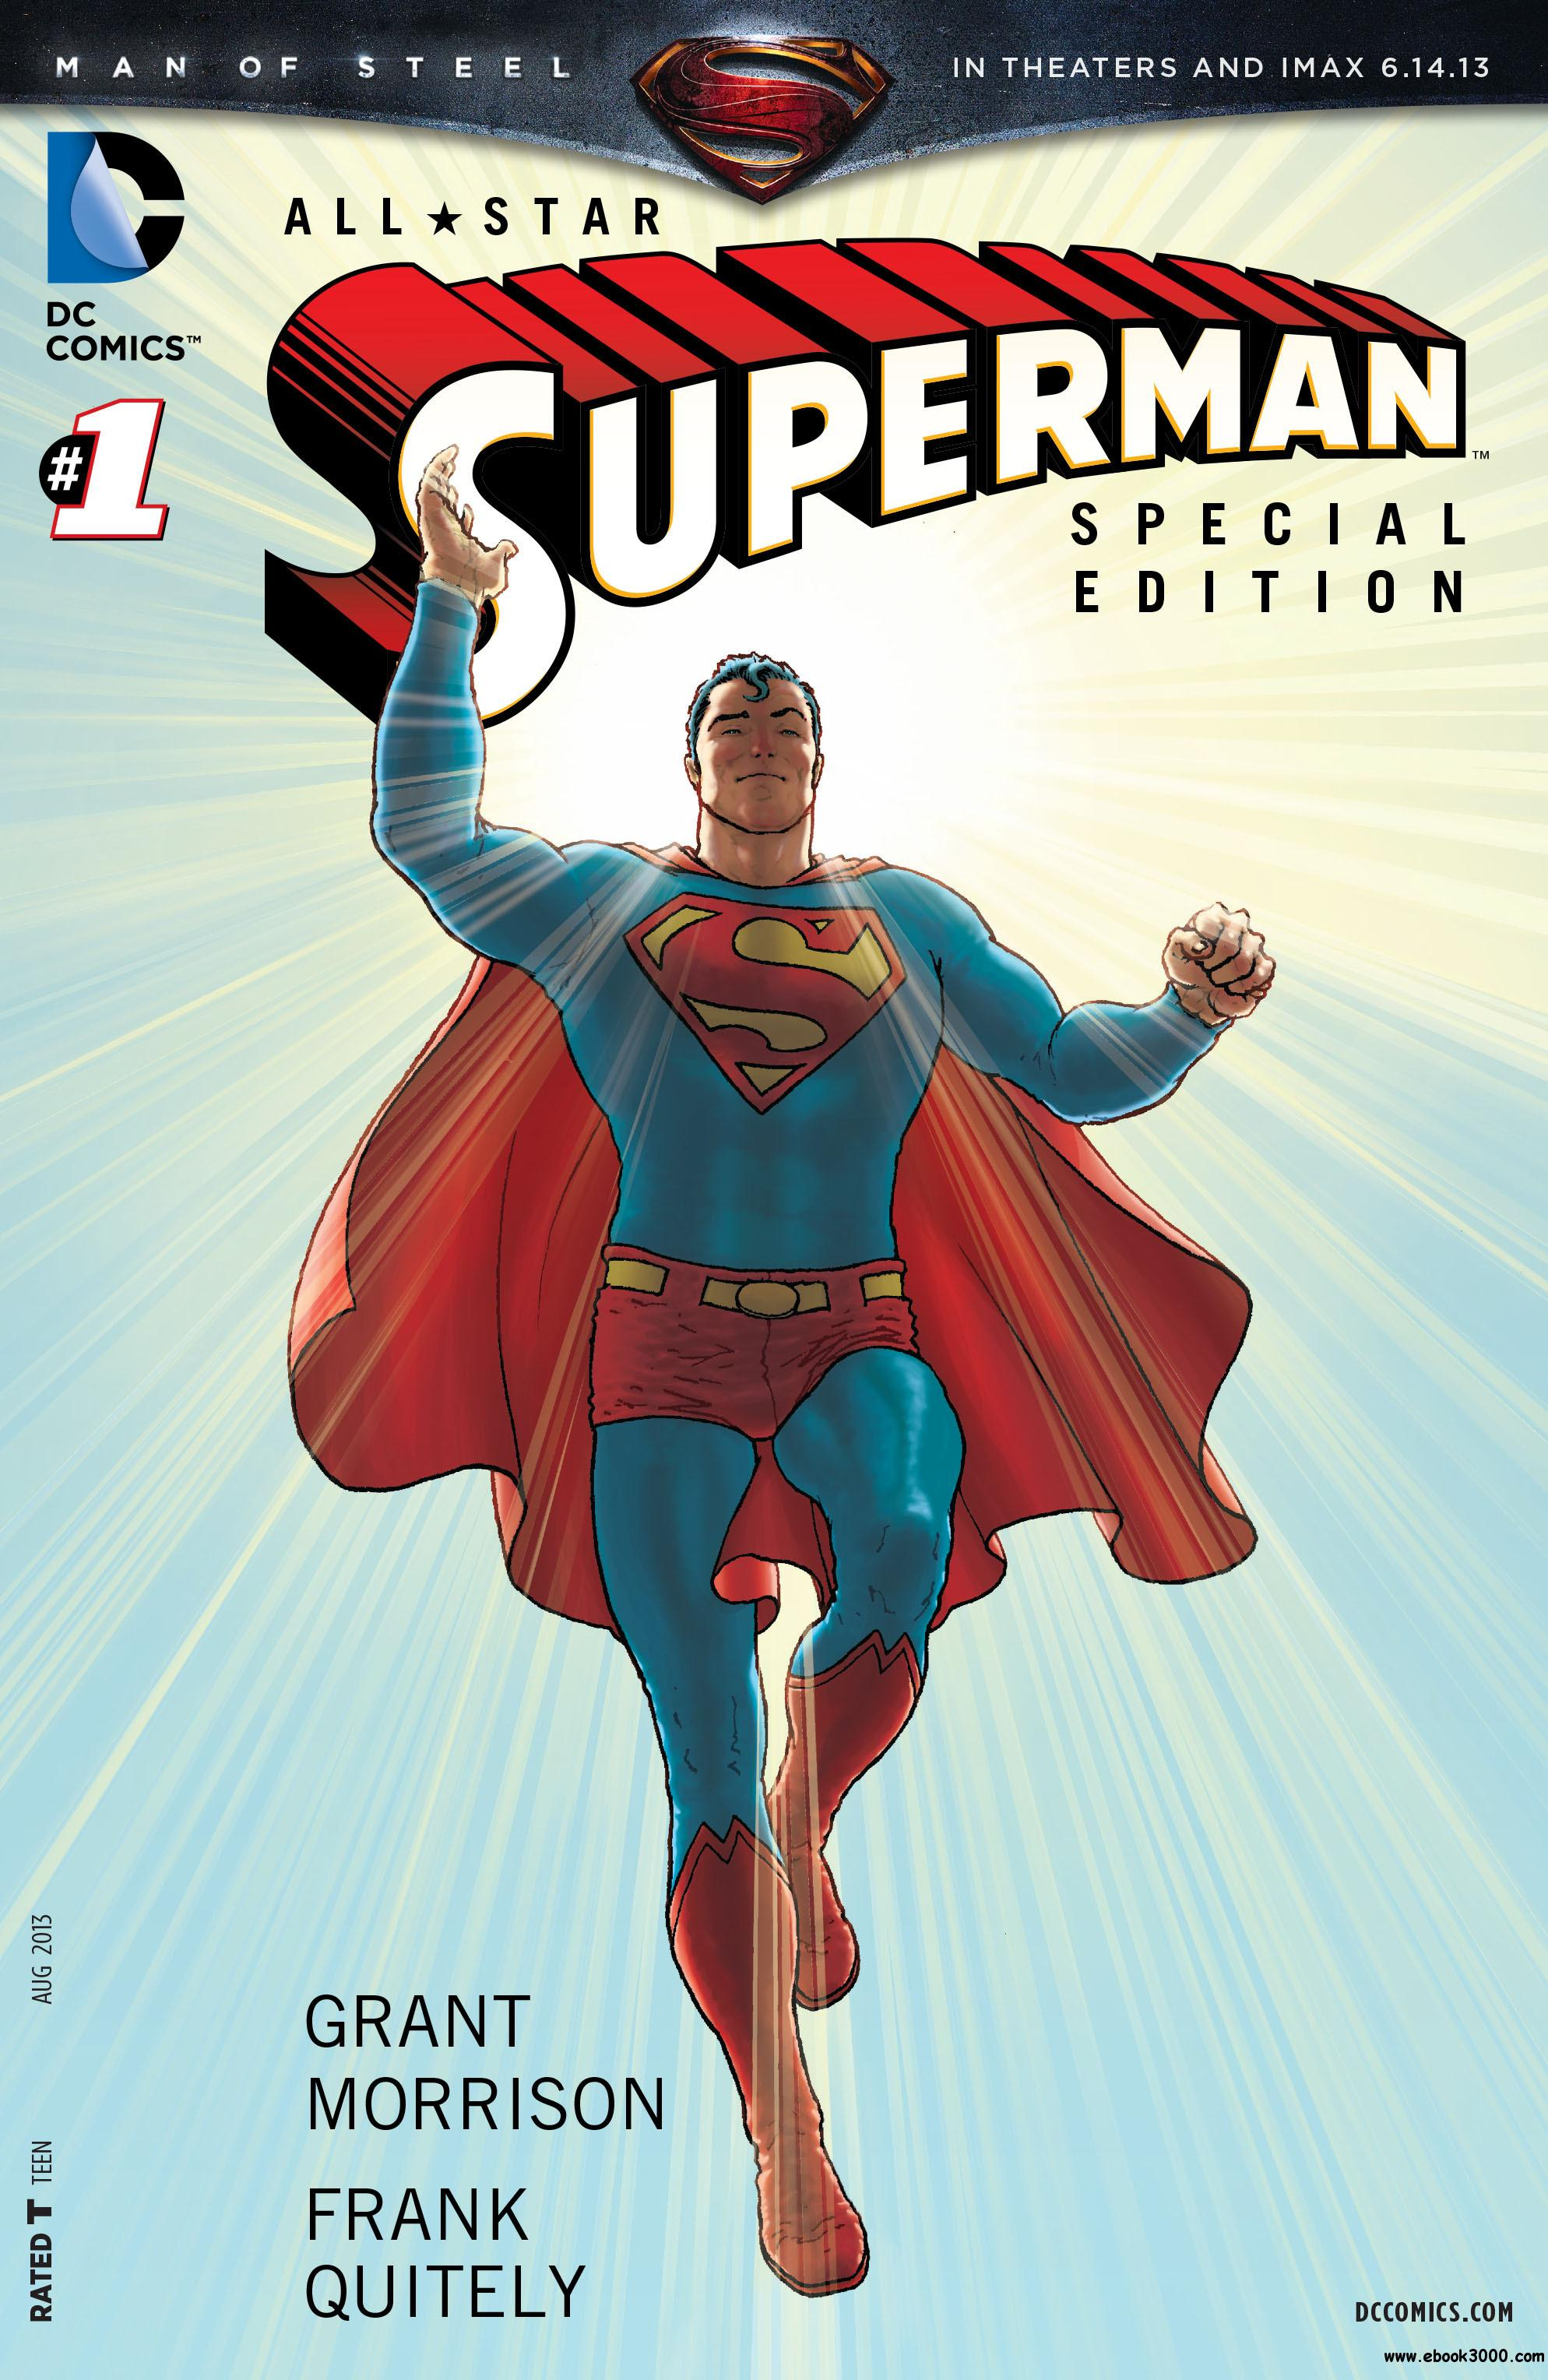 Man of Steel - All-Star Superman Special Edition 001 (2013) free download